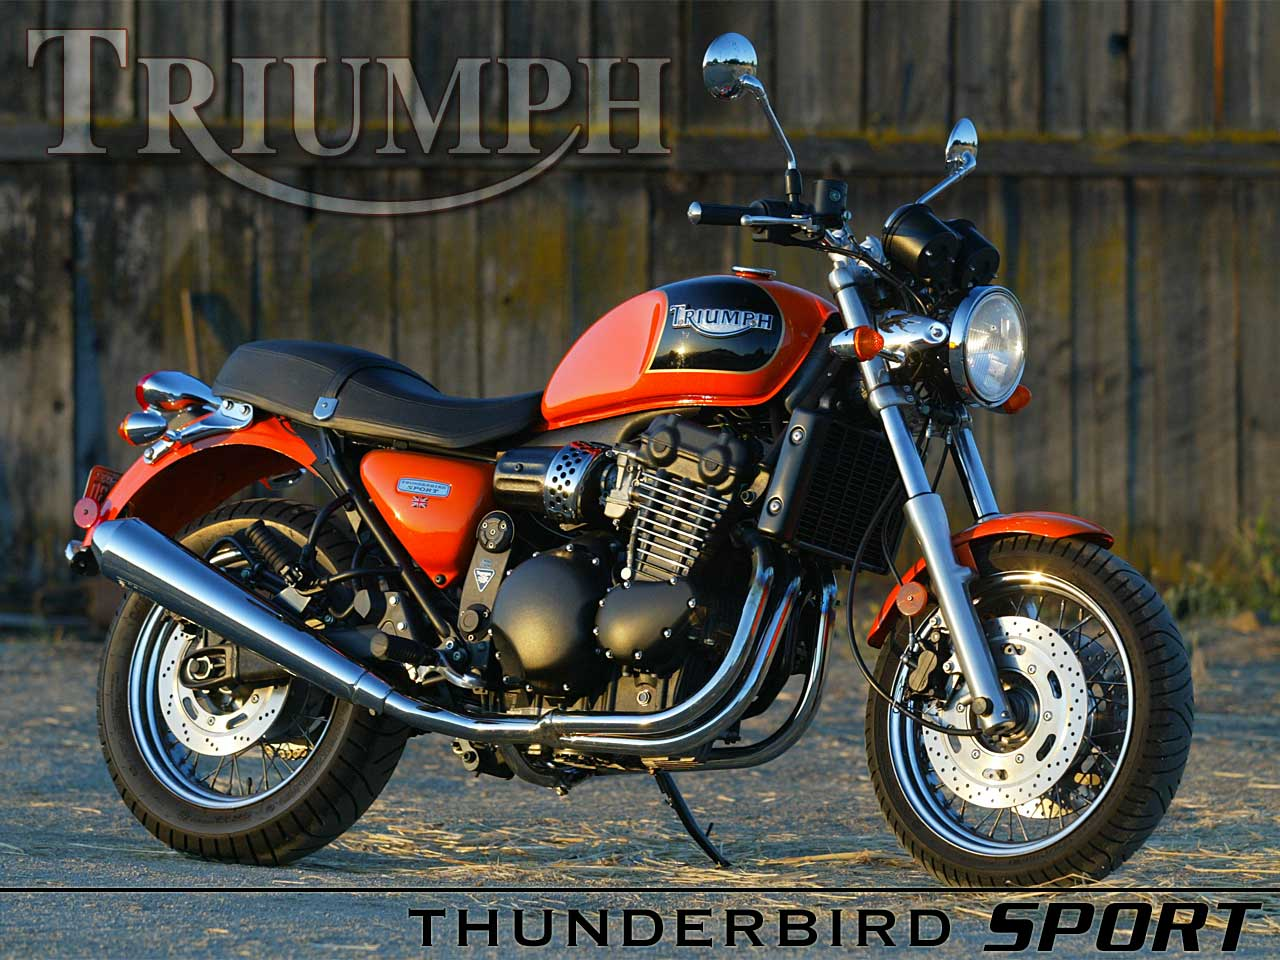 Triumph Thunderbird 900 Sport 2004 wallpapers #130116